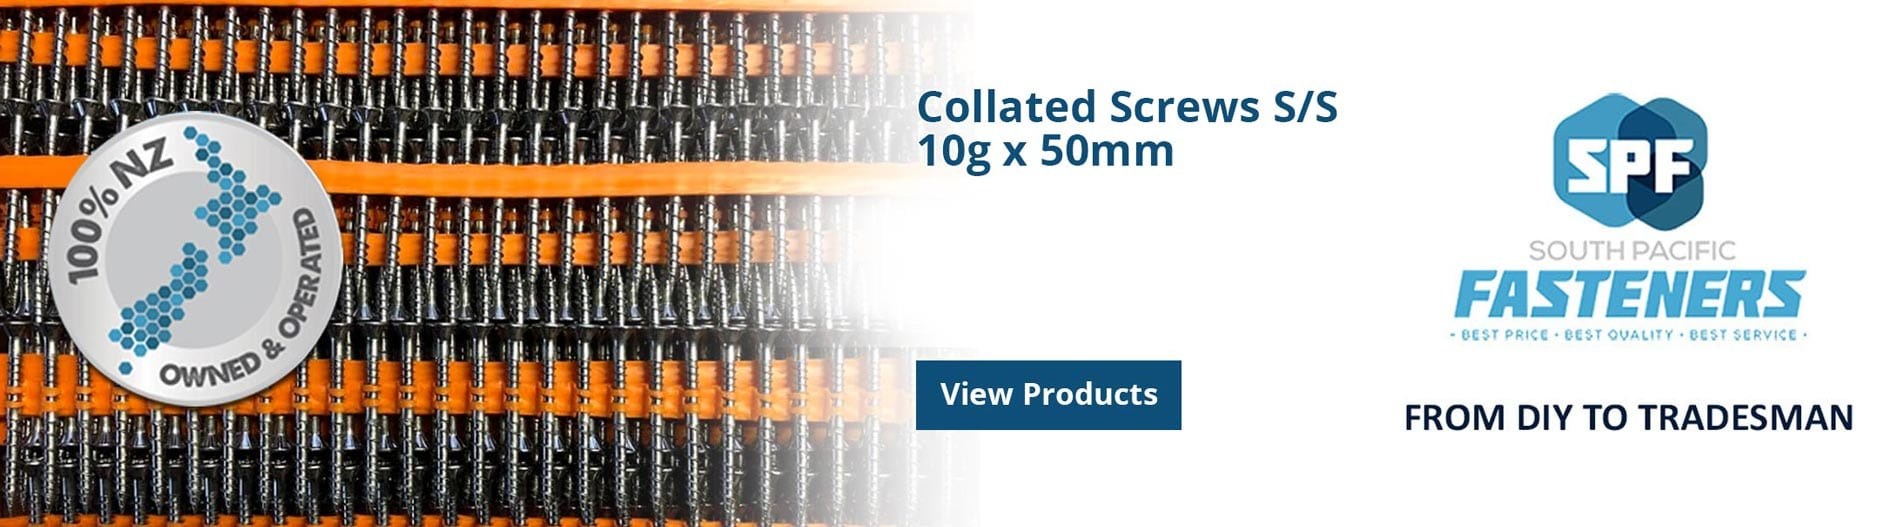 Collated Screws - SP Fasteners